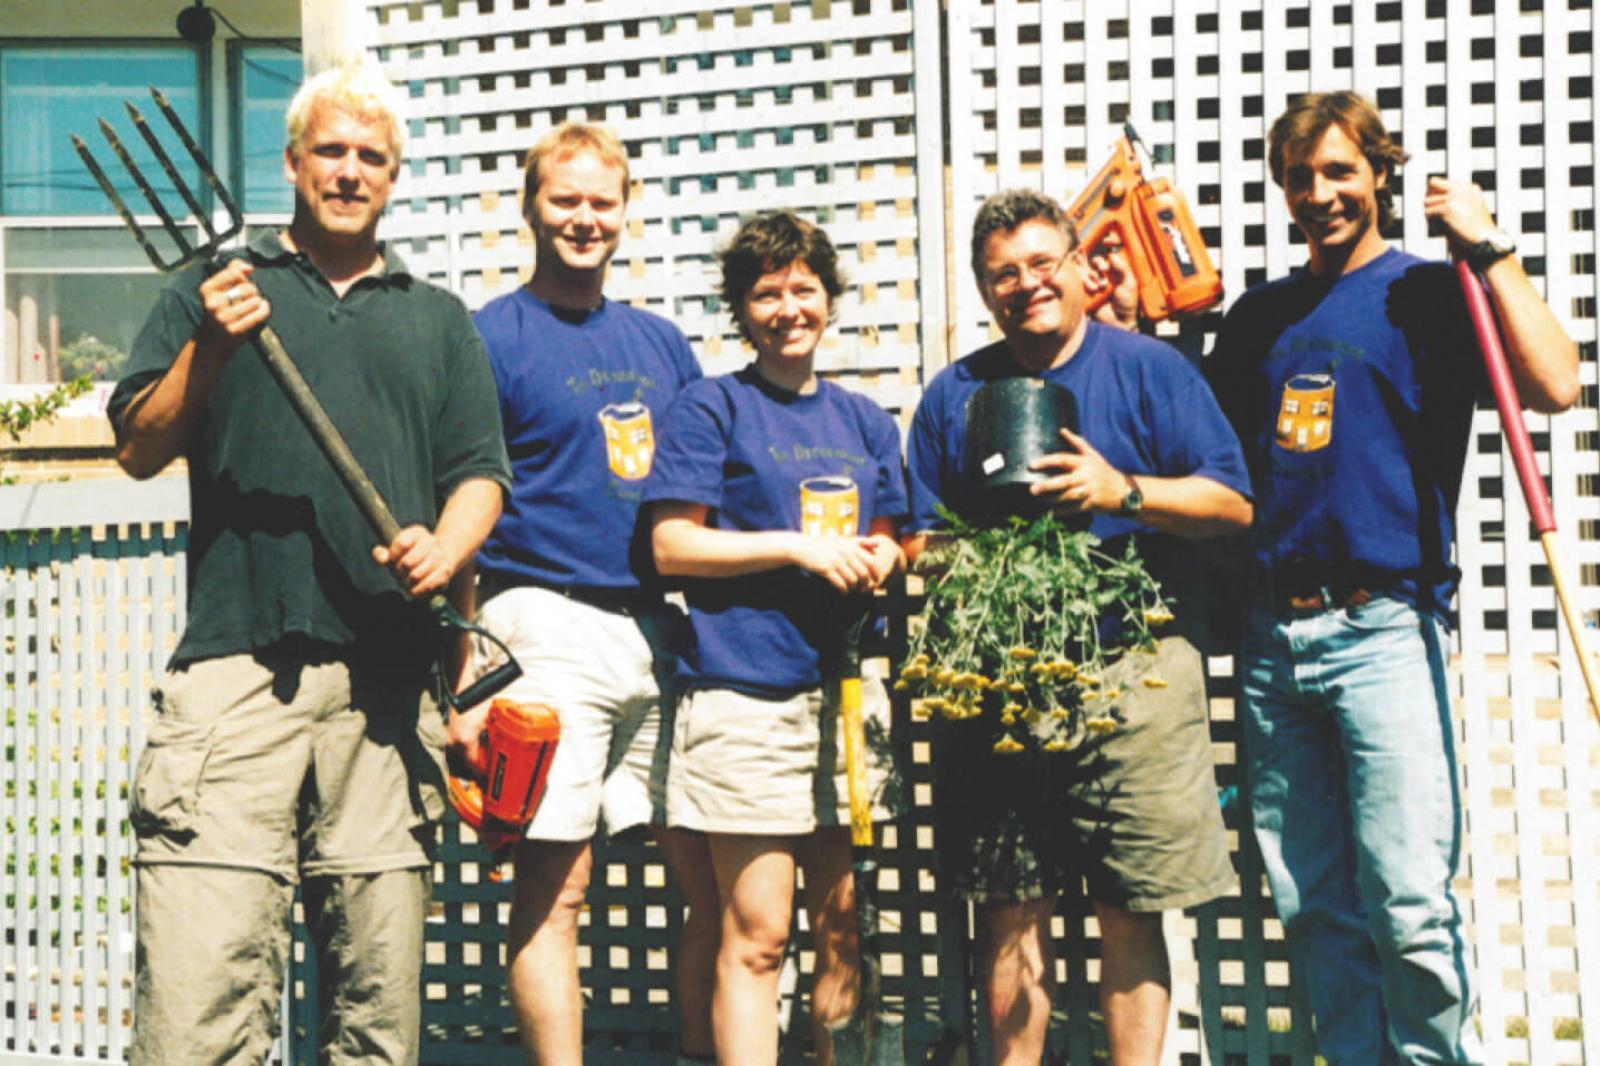 HGTV featured the television show, The Decorating Challenge. Two gardens were designed by LO member Haig Sefarian and membership coordinator Denis Flanagan. In photo, from left, ready to begin one of the shows, are Scott Olsen, show producer, Phill Collier (who now works with Dufferin Aggregates) Laura Collier, Denis Flanagan and the show's carpenter.